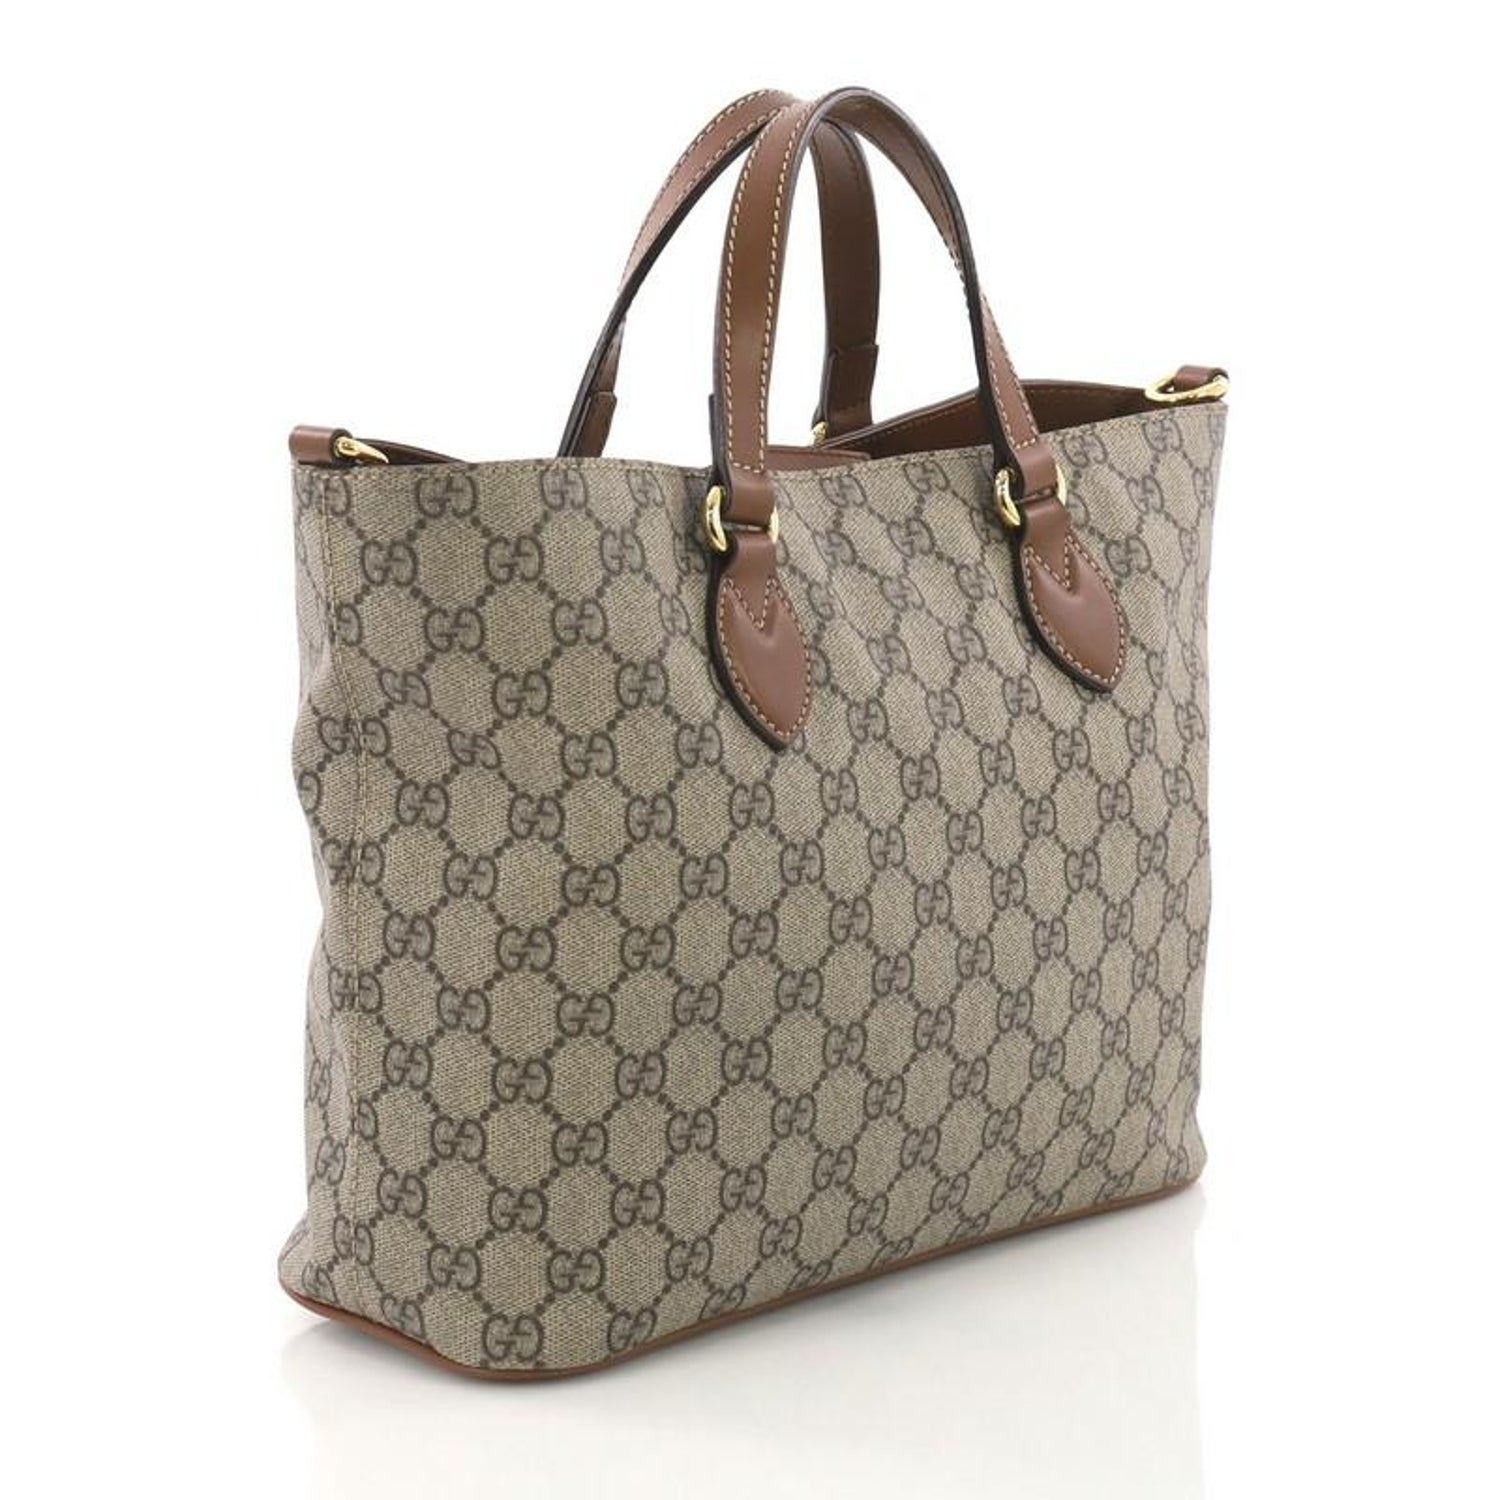 7685a4f812a8 Gucci Convertible Soft Tote GG Coated Canvas Small For Sale at 1stdibs